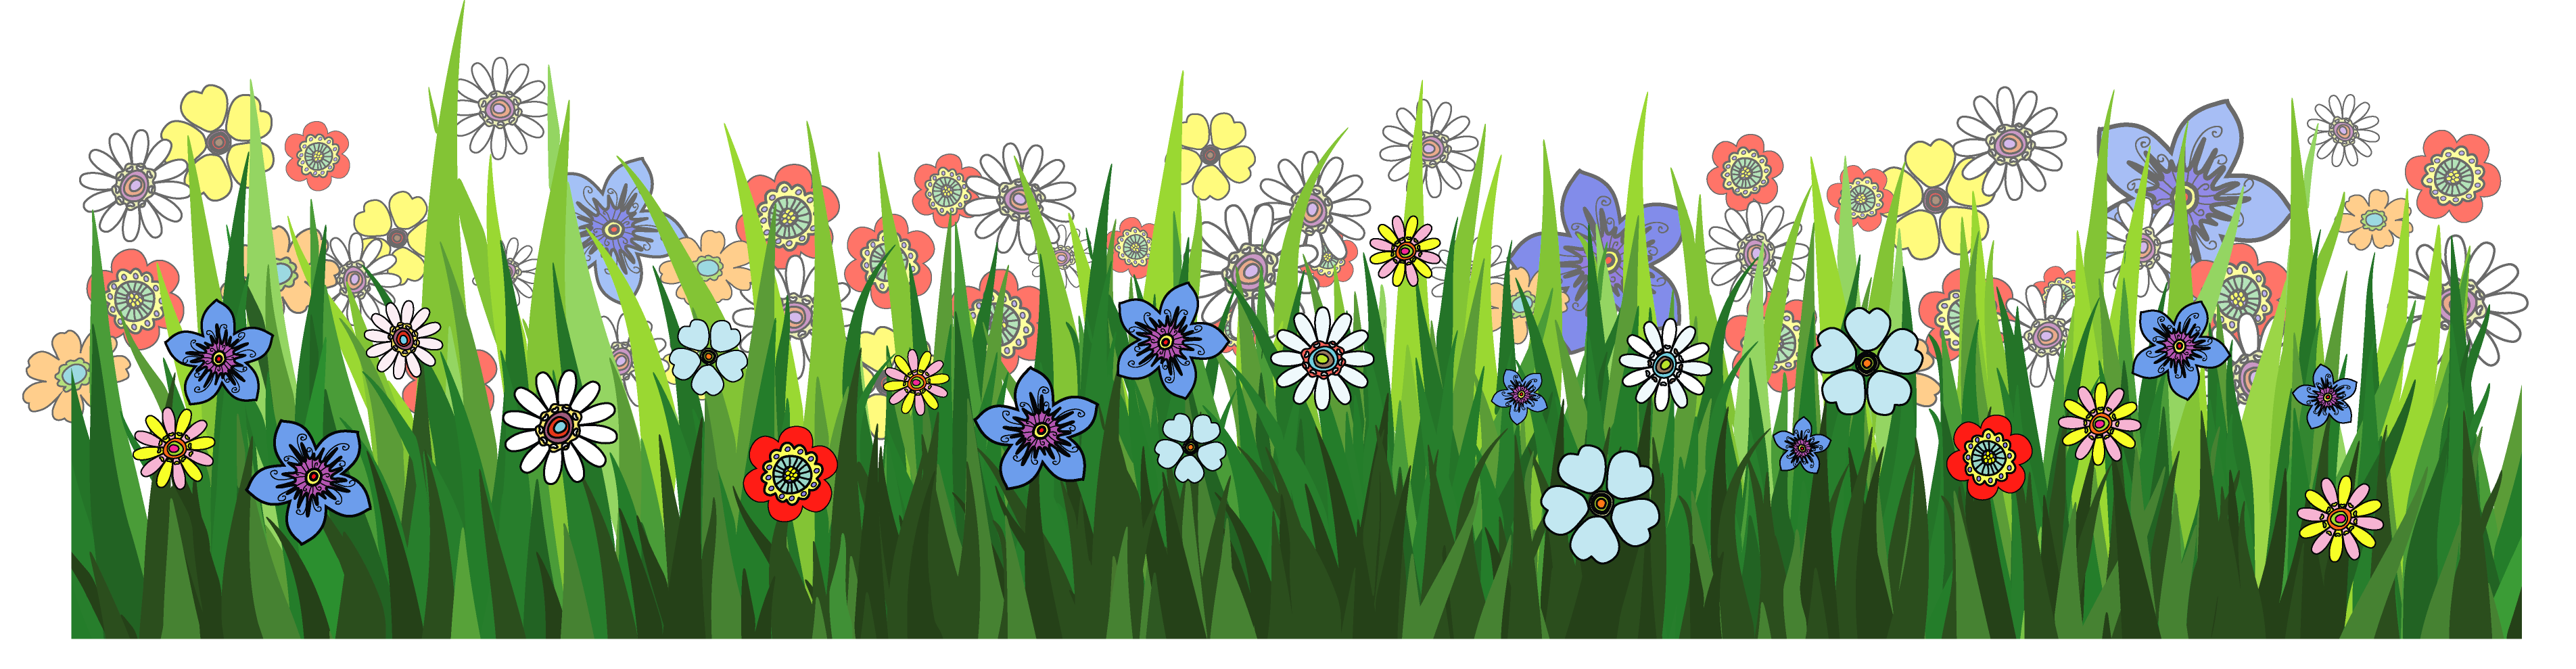 Grass Ground with Flowers PNG Picture.